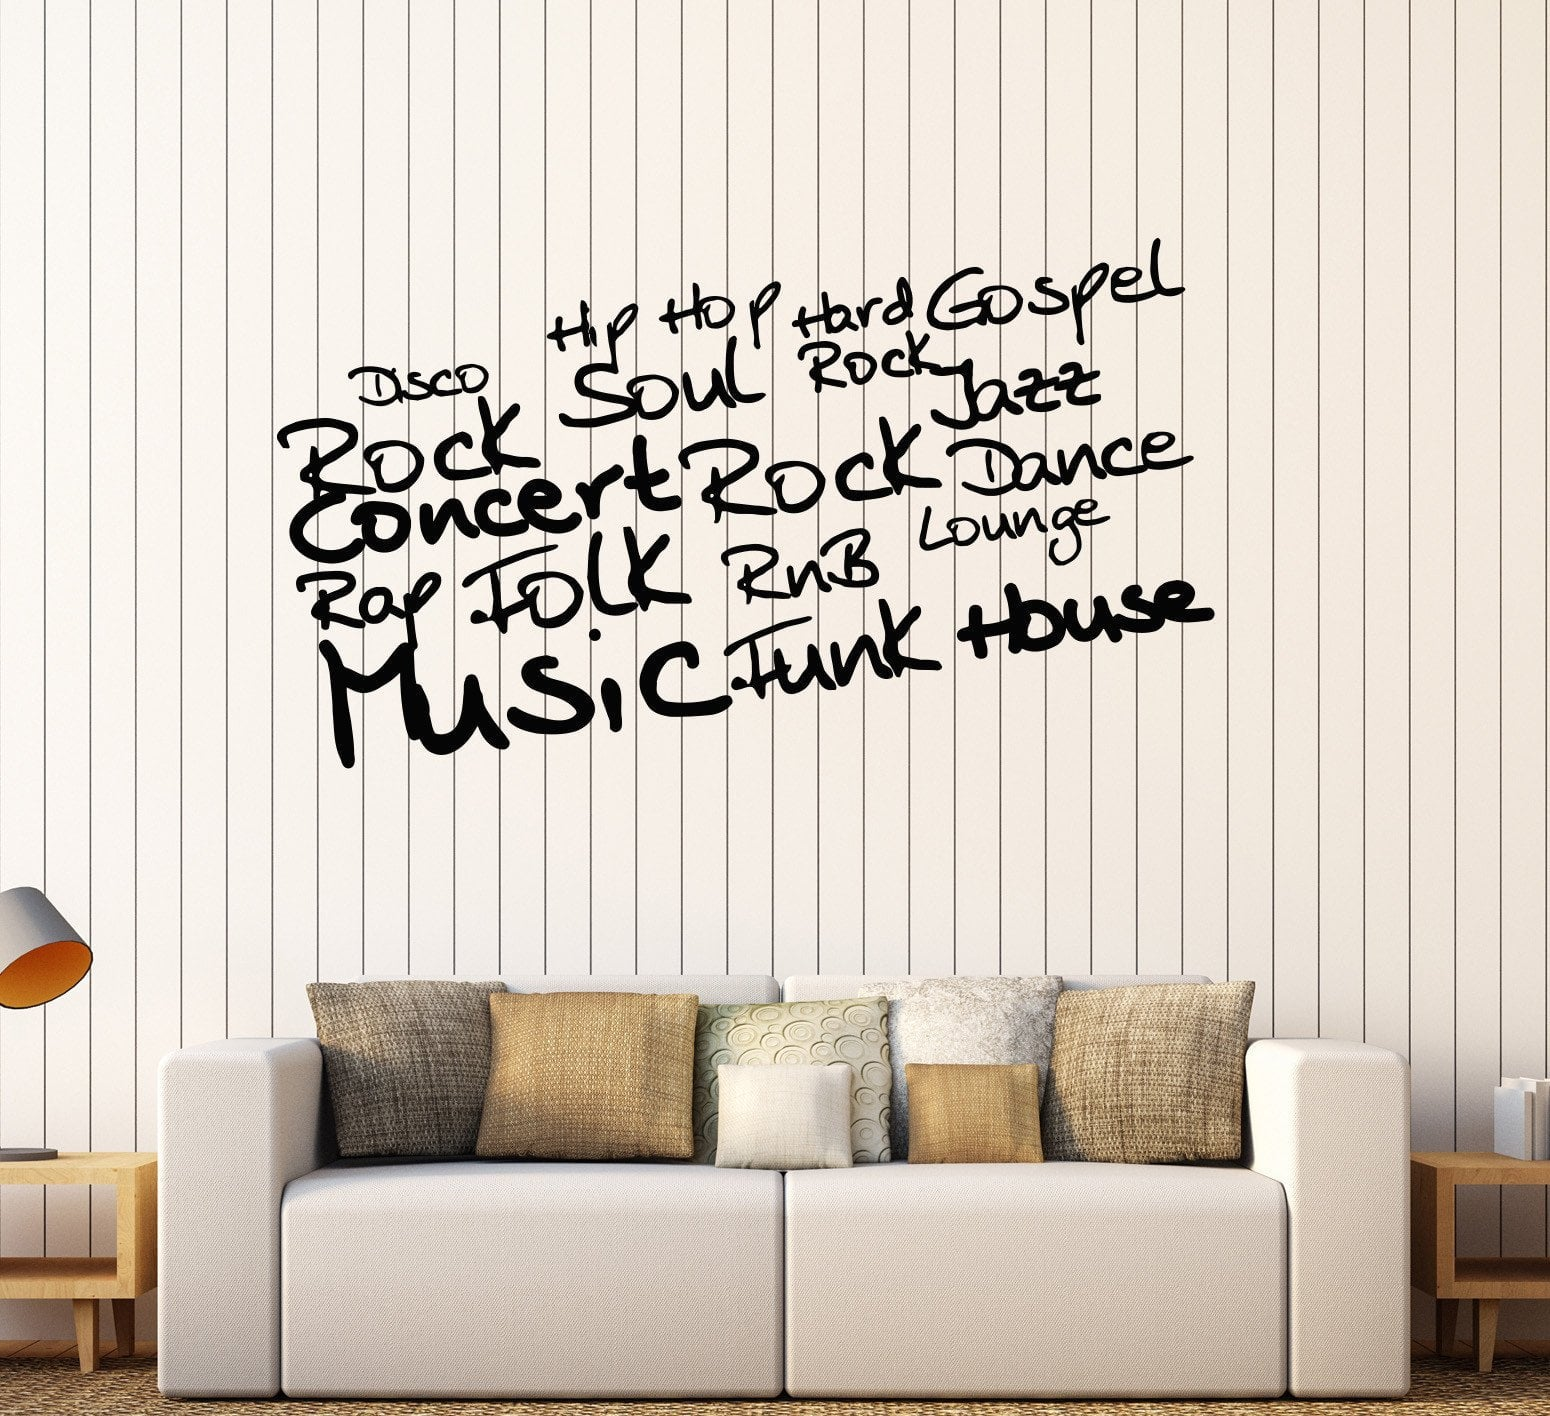 Music Is Love In Search Of A Word Vinyl Decal Wall Sticker Words Home Decor